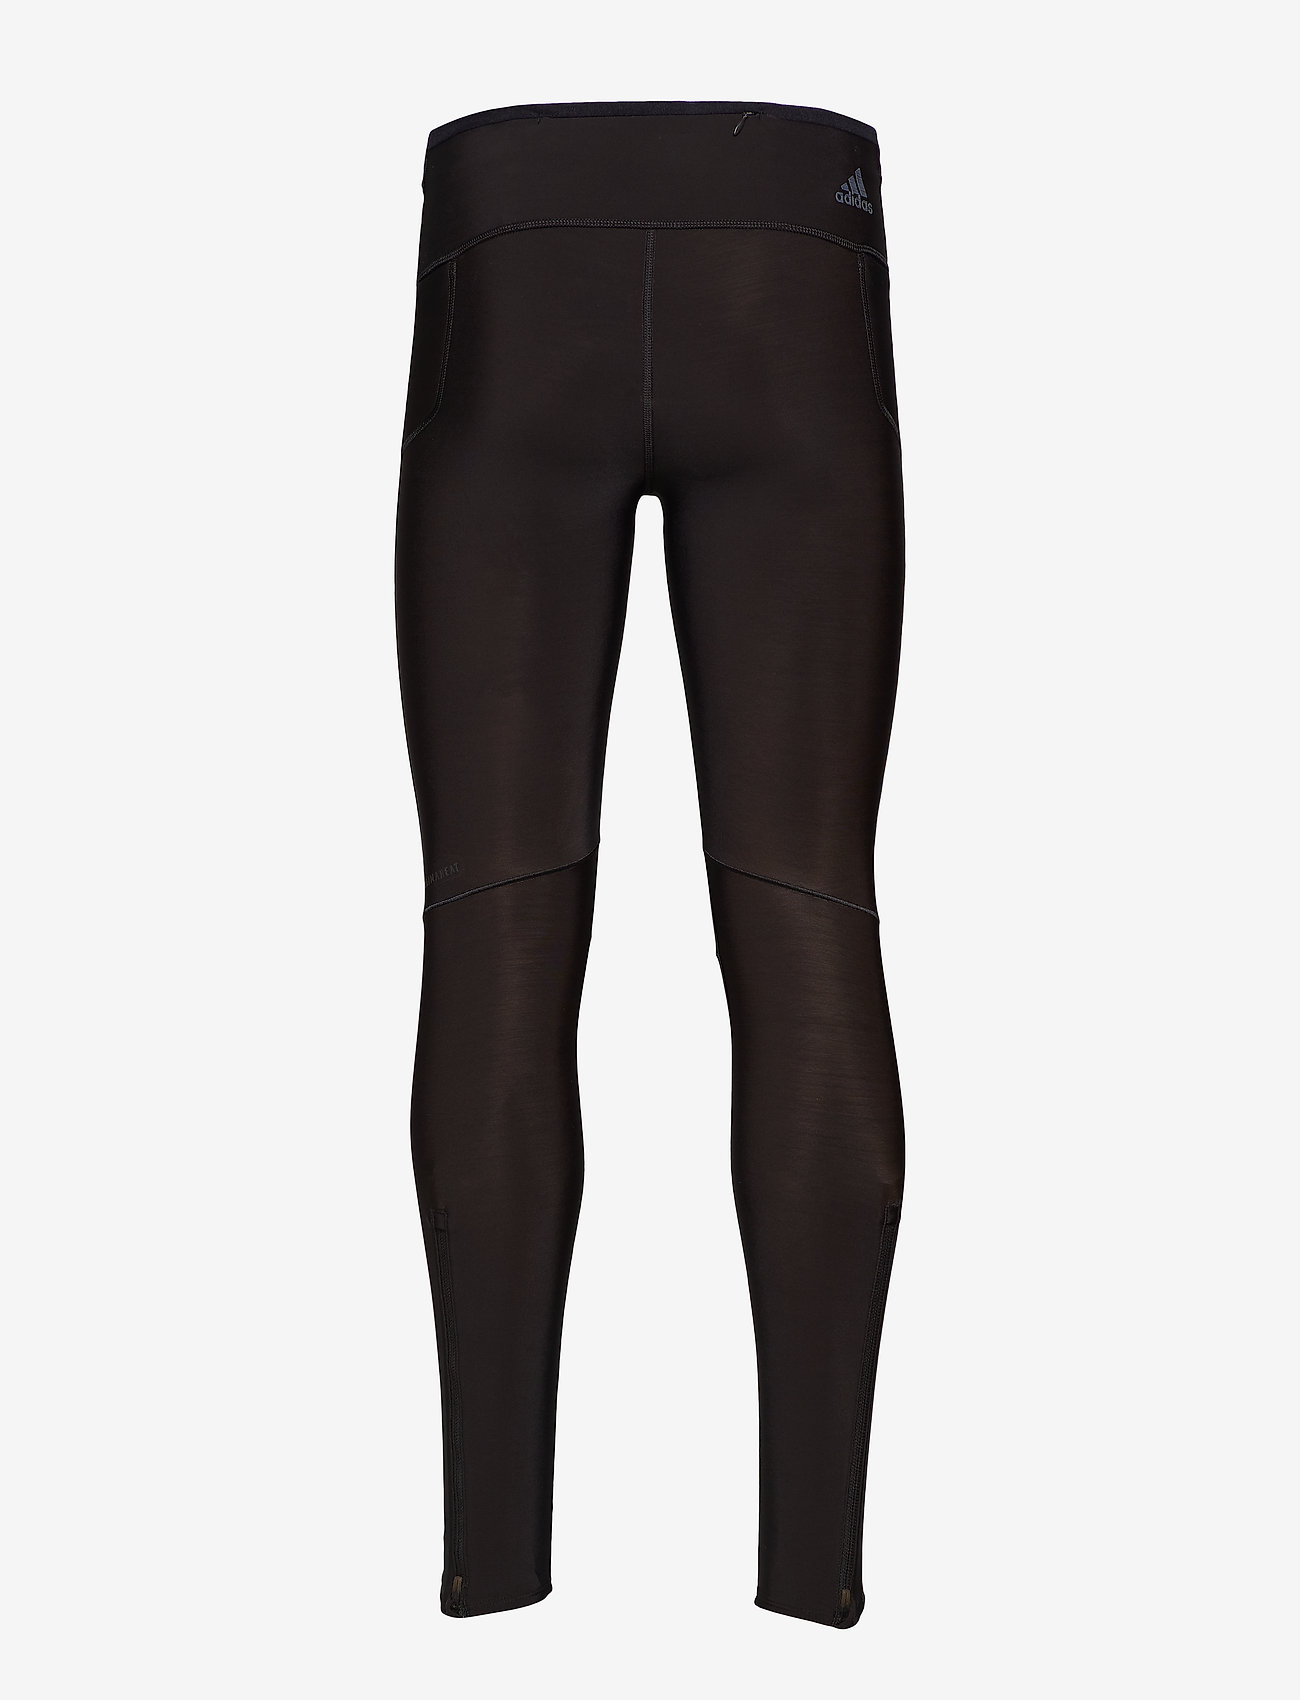 adidas Performance - SUPERNOVA TIGHT - running & training tights - black - 1